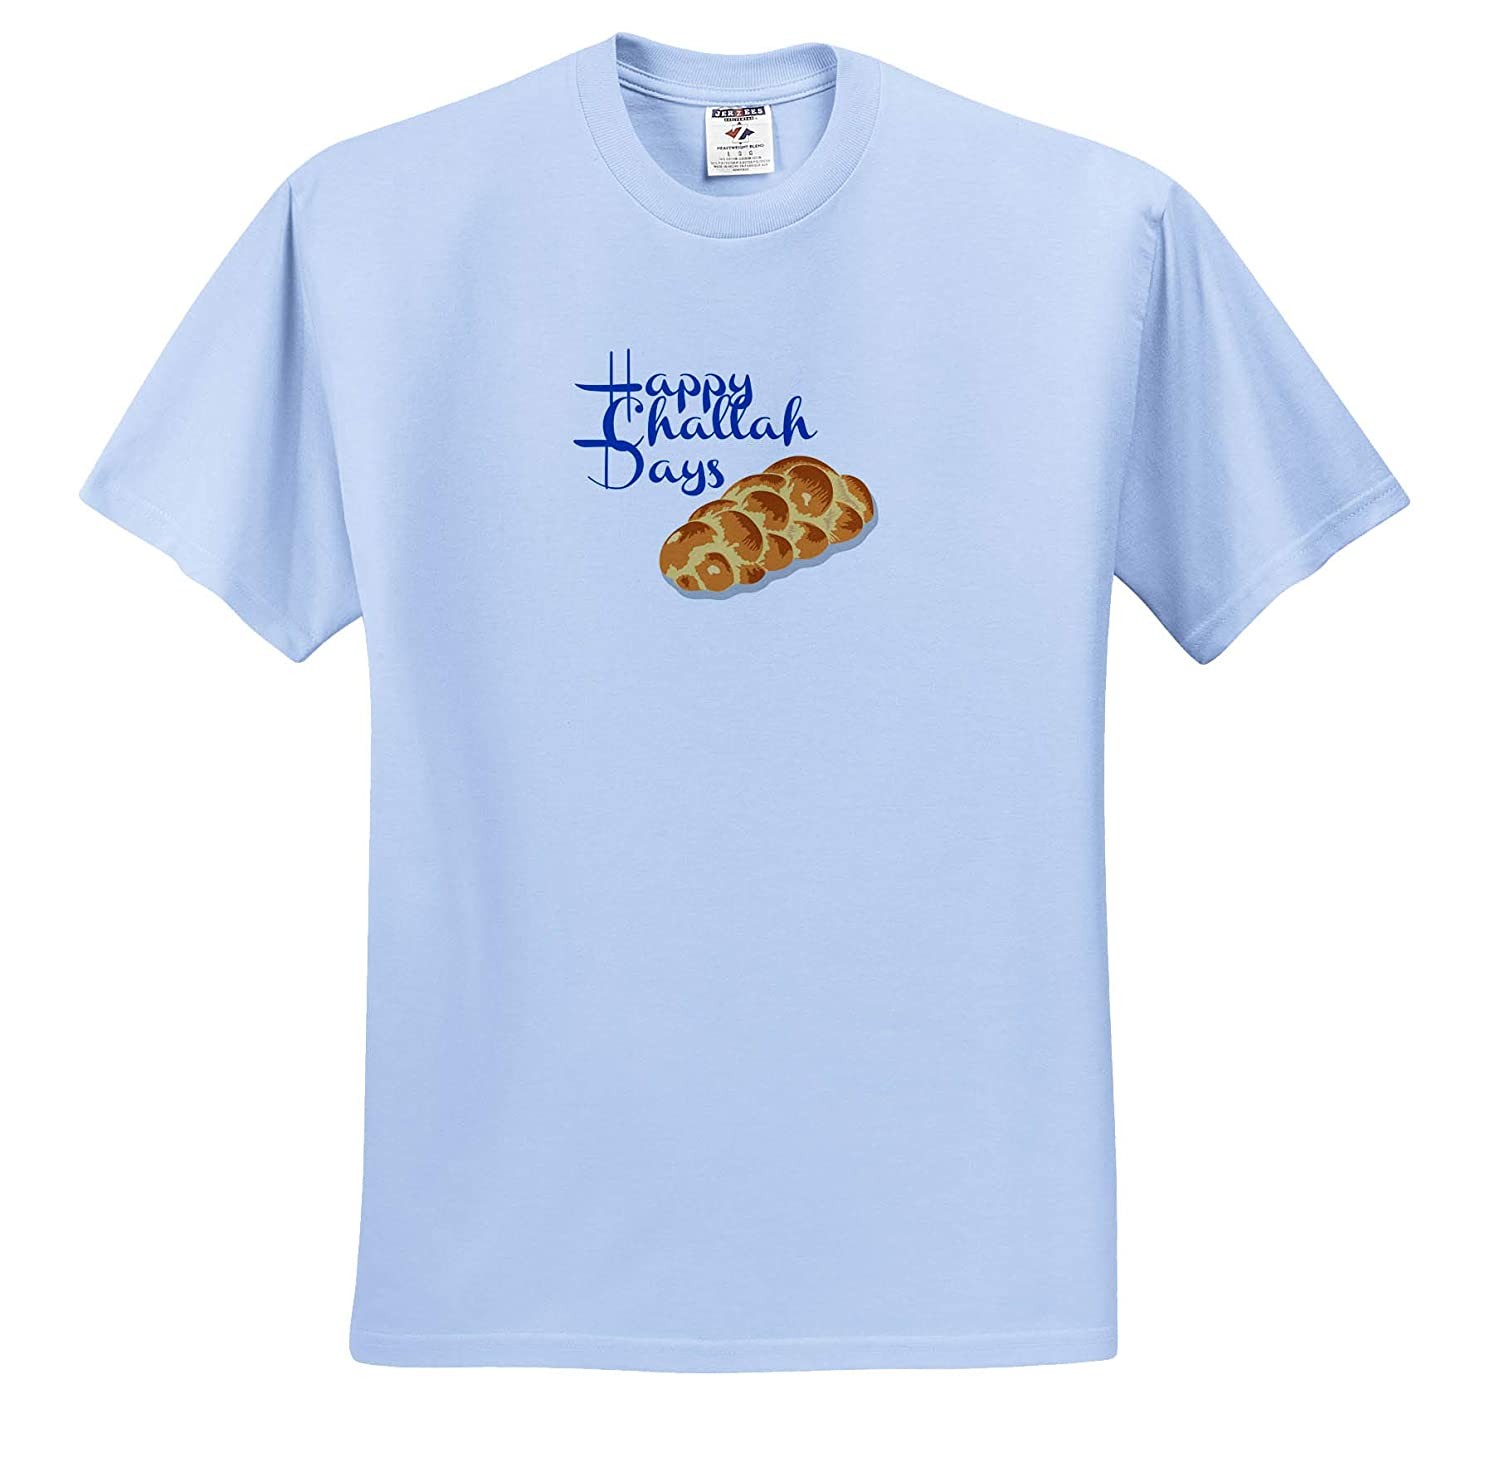 T-Shirts Quote Image of Happy Challah Days Quote 3dRose Gabriella B